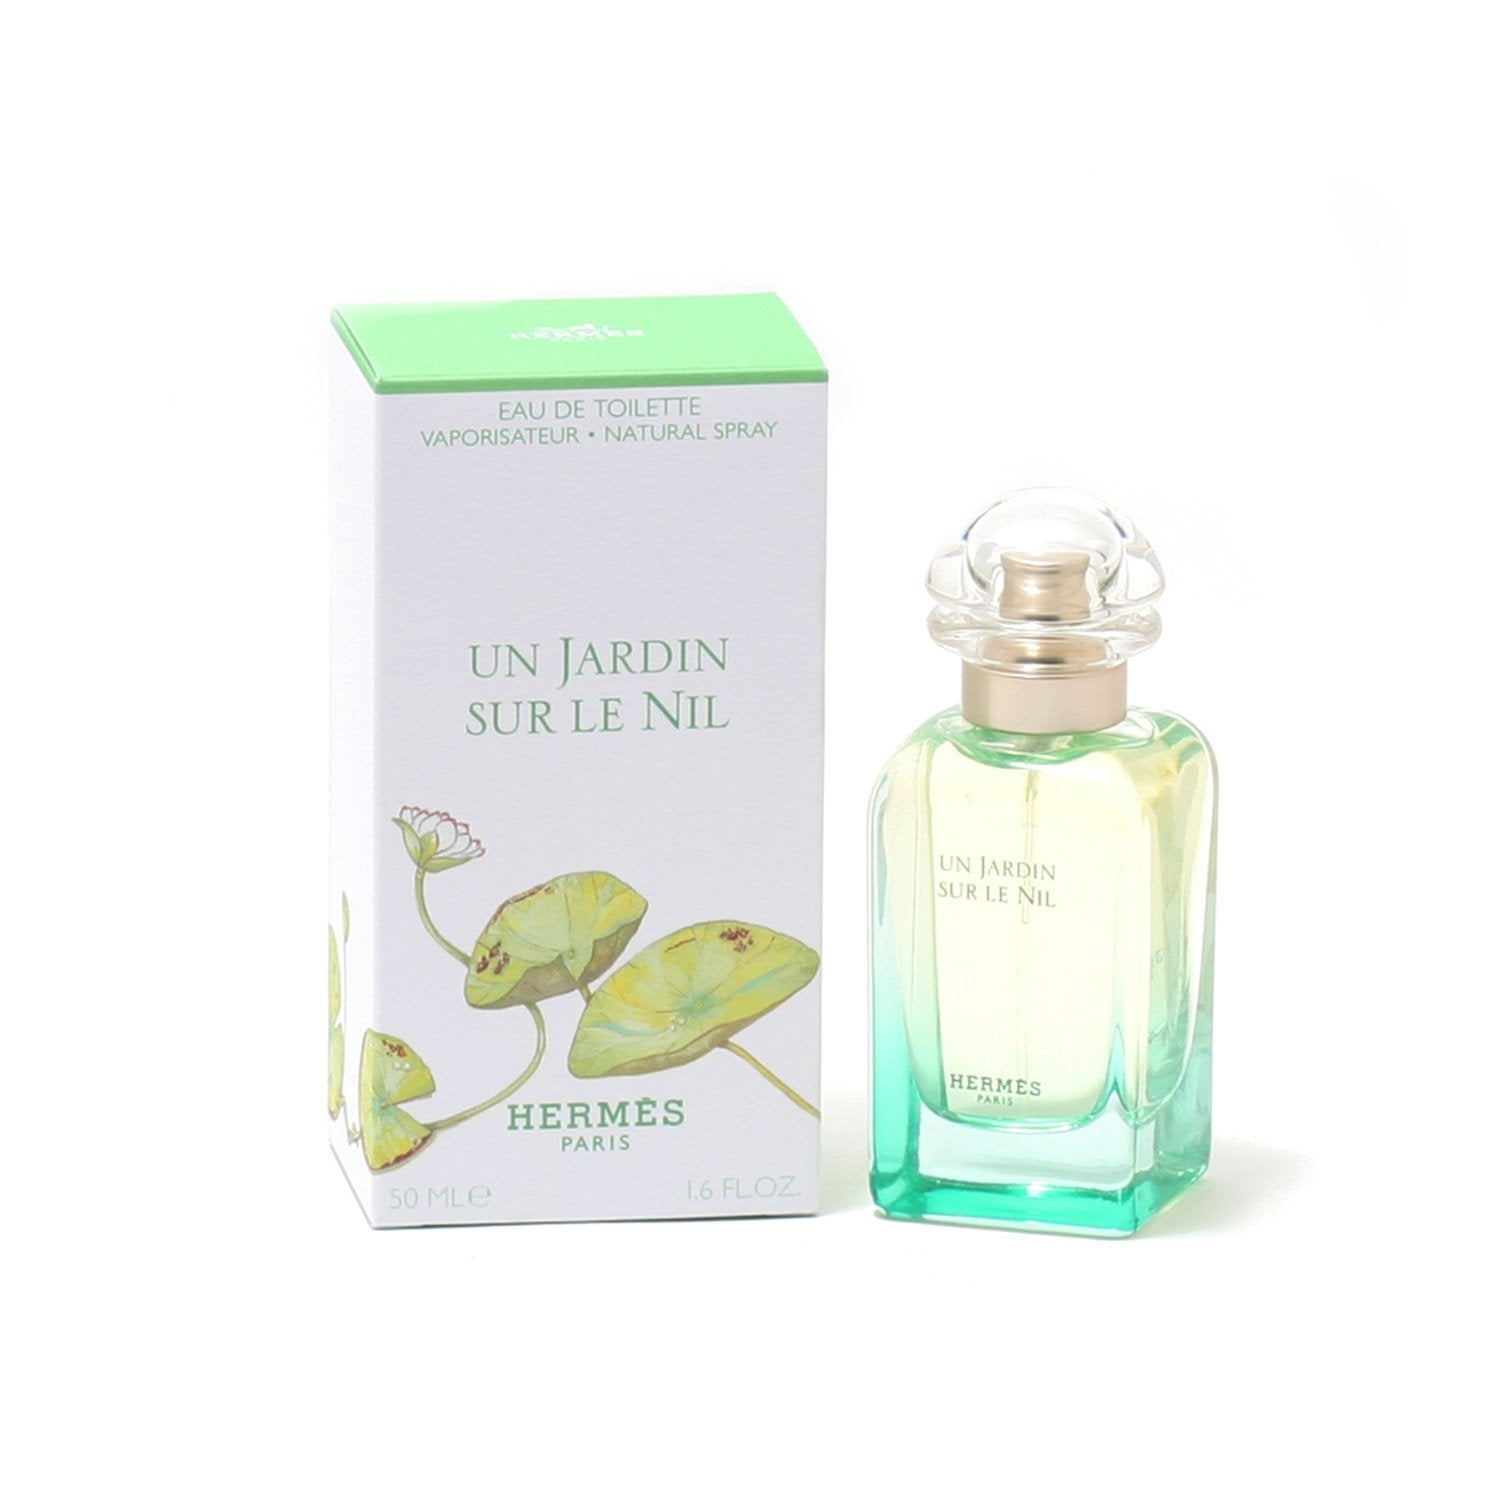 Perfume - HERMES UN JARDIN SUR LE NIL FOR WOMEN - EAU DE TOILETTE SPRAY